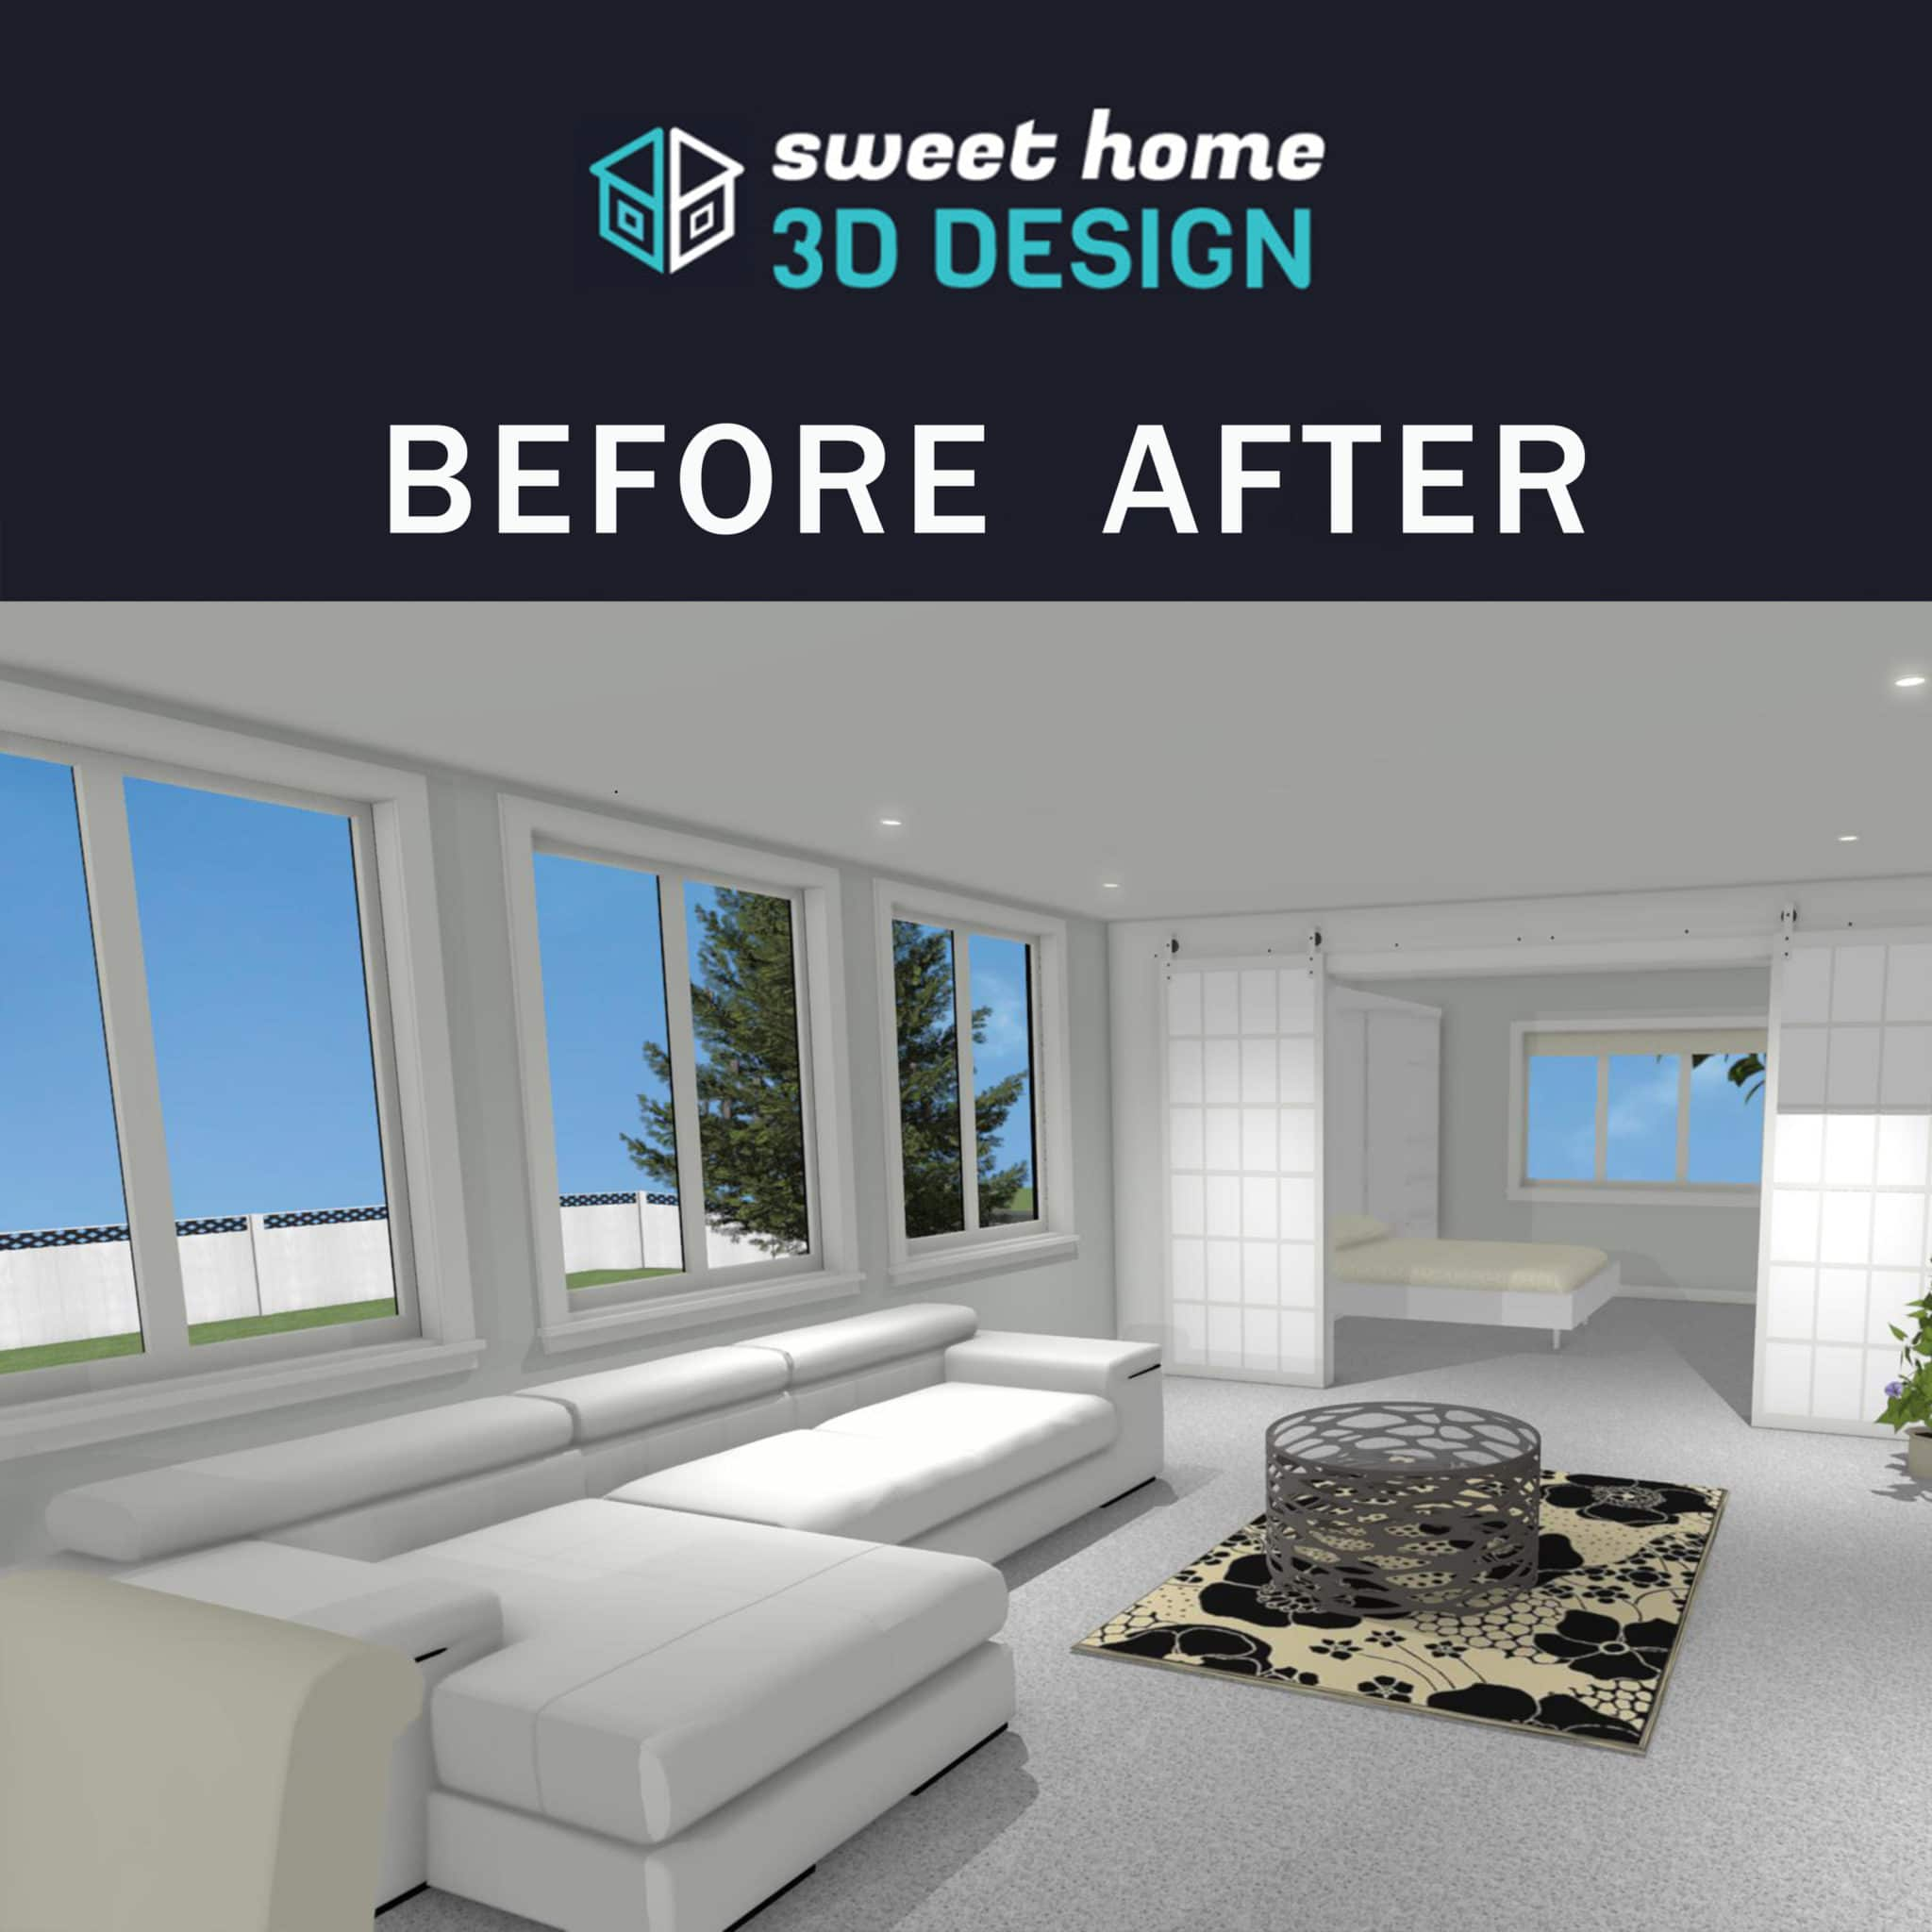 Compare the house before and after renovation you can save your time and money with right choice